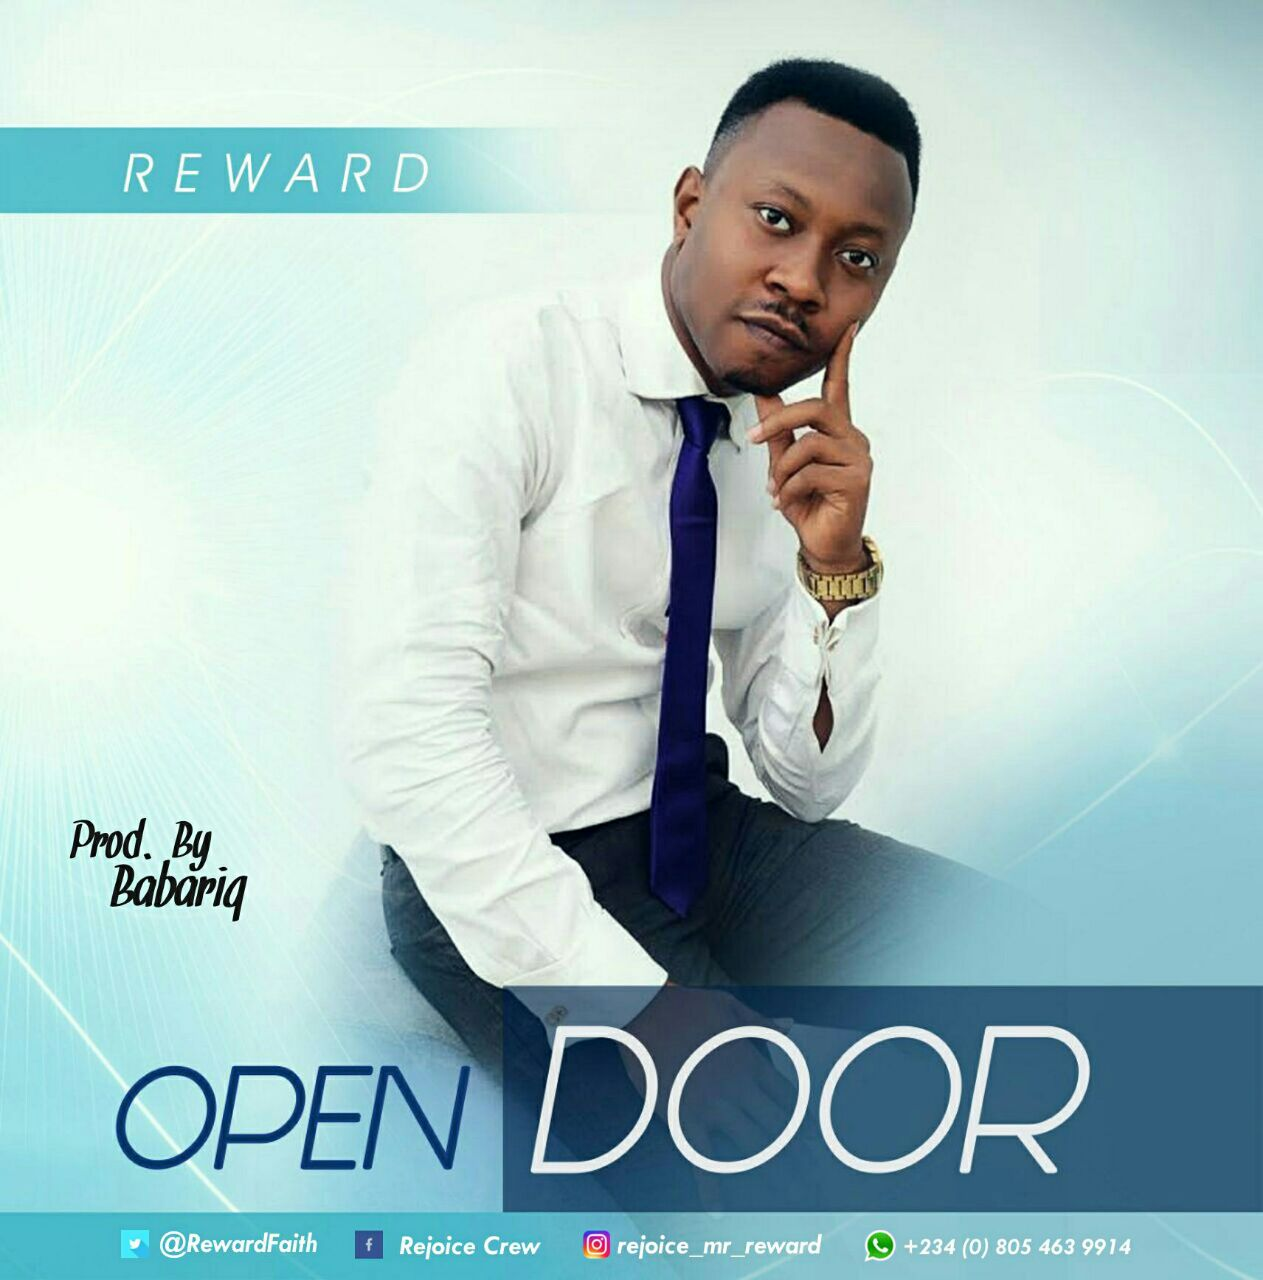 OPEN DOOR - Reward [@RewardFaith]